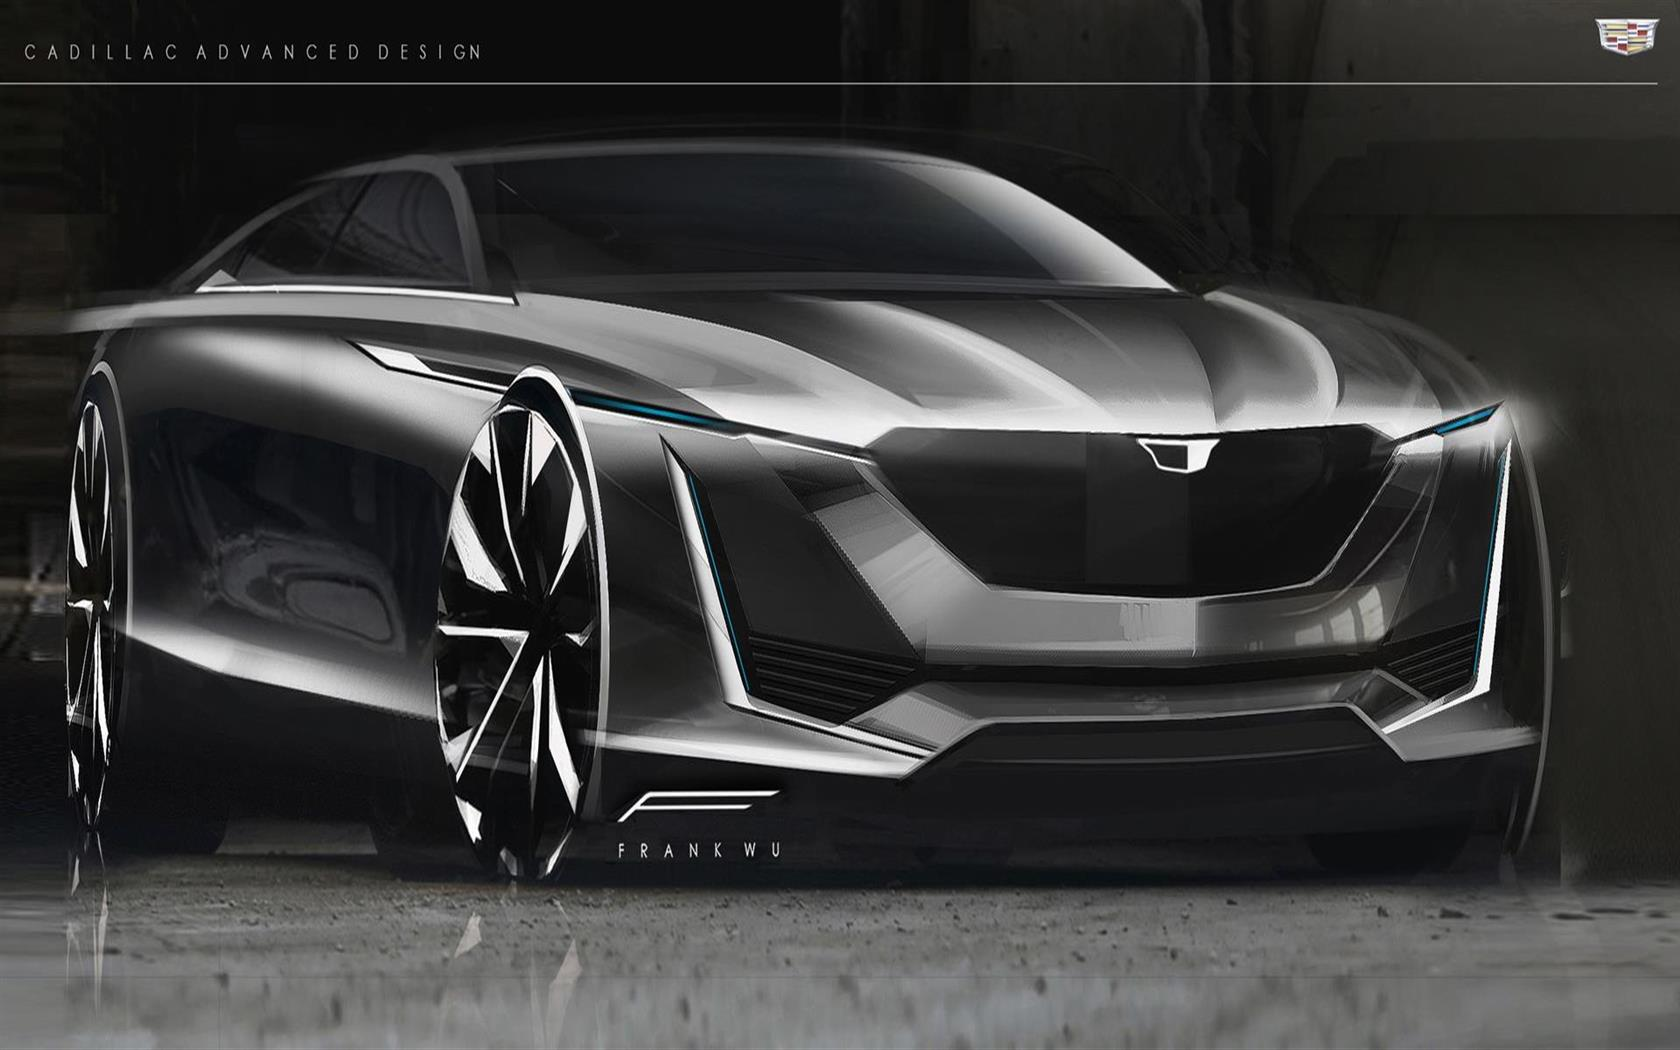 2016 cadillac escala concept image. Cars Review. Best American Auto & Cars Review